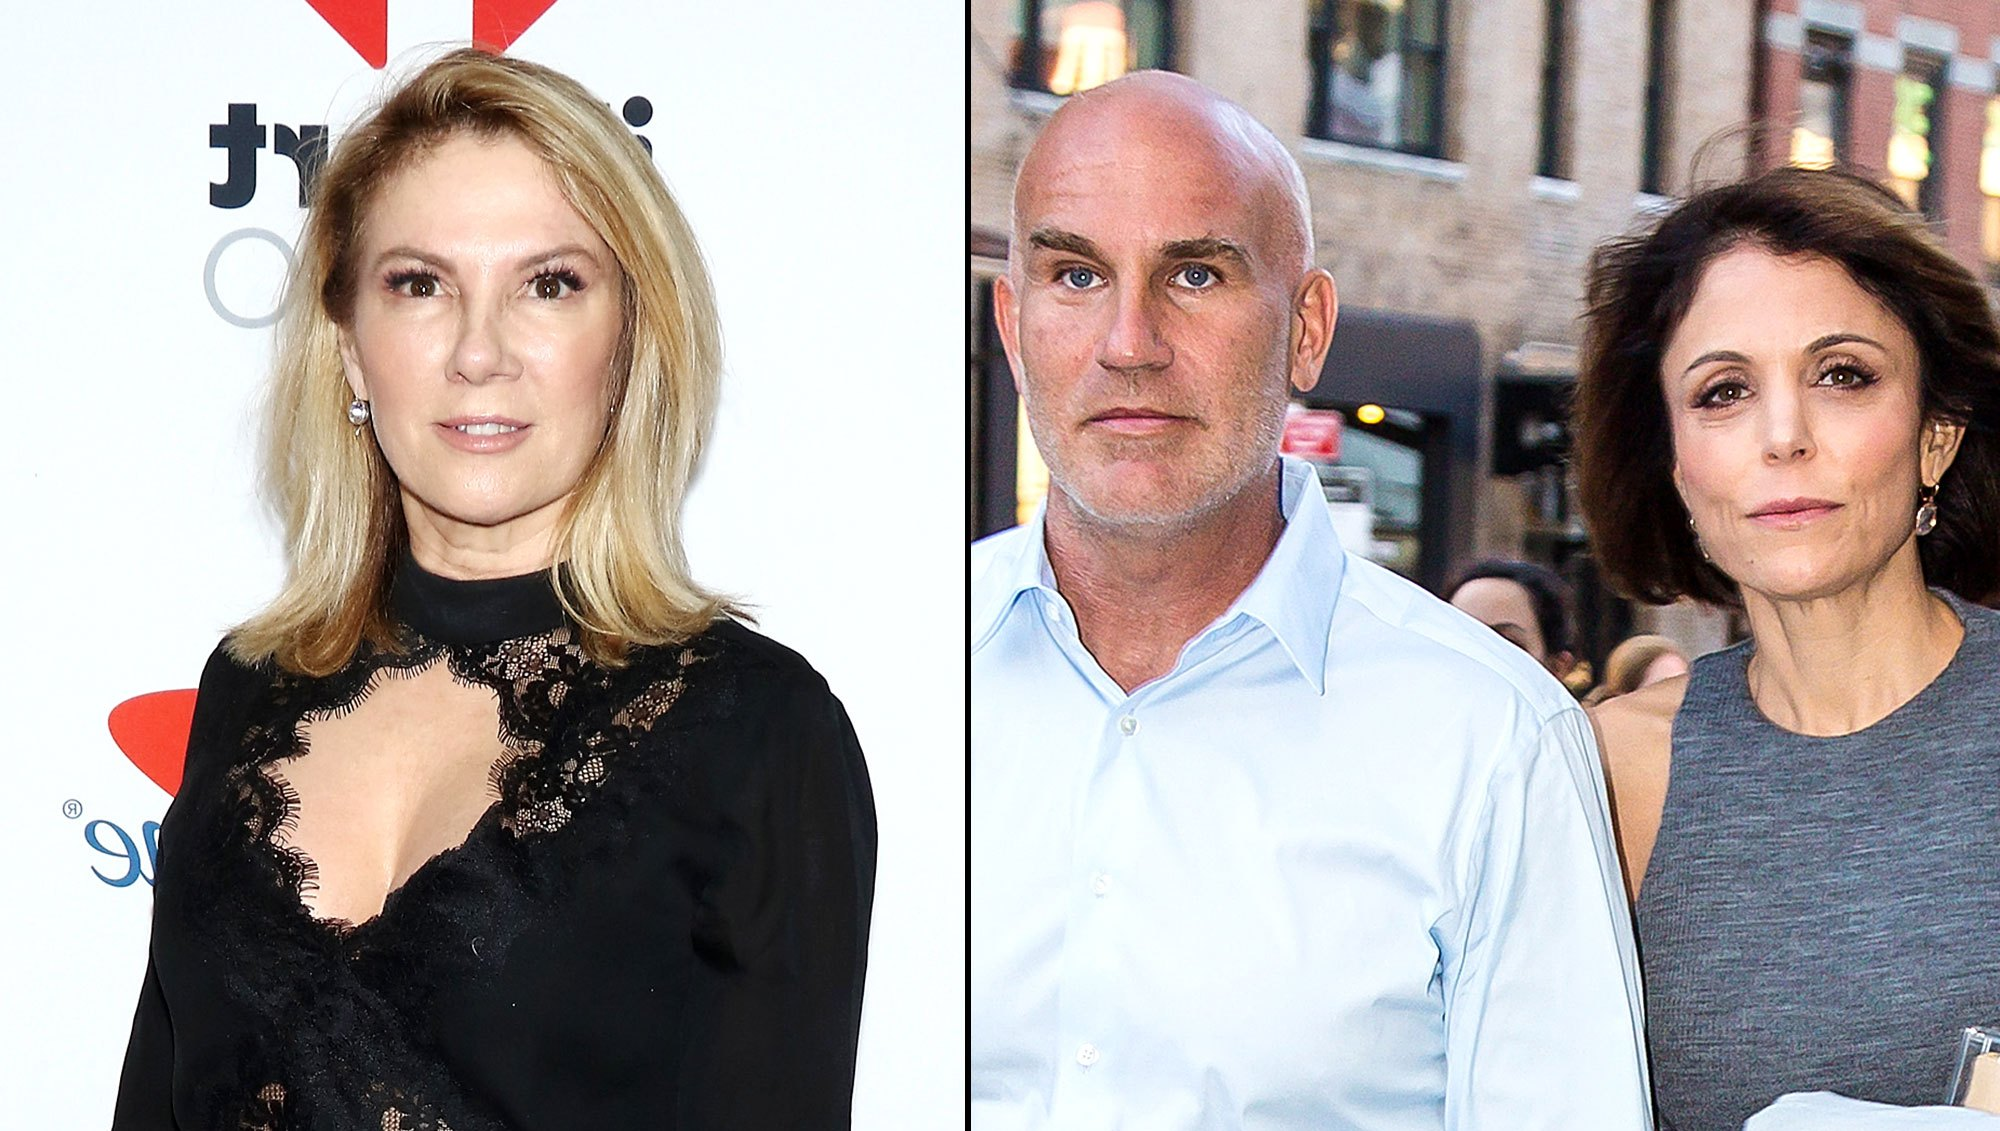 Ramona Singer Apologizes for Comments About Bethany Frankle's Late BF Dennis Shields Ahead of RHONY Episode